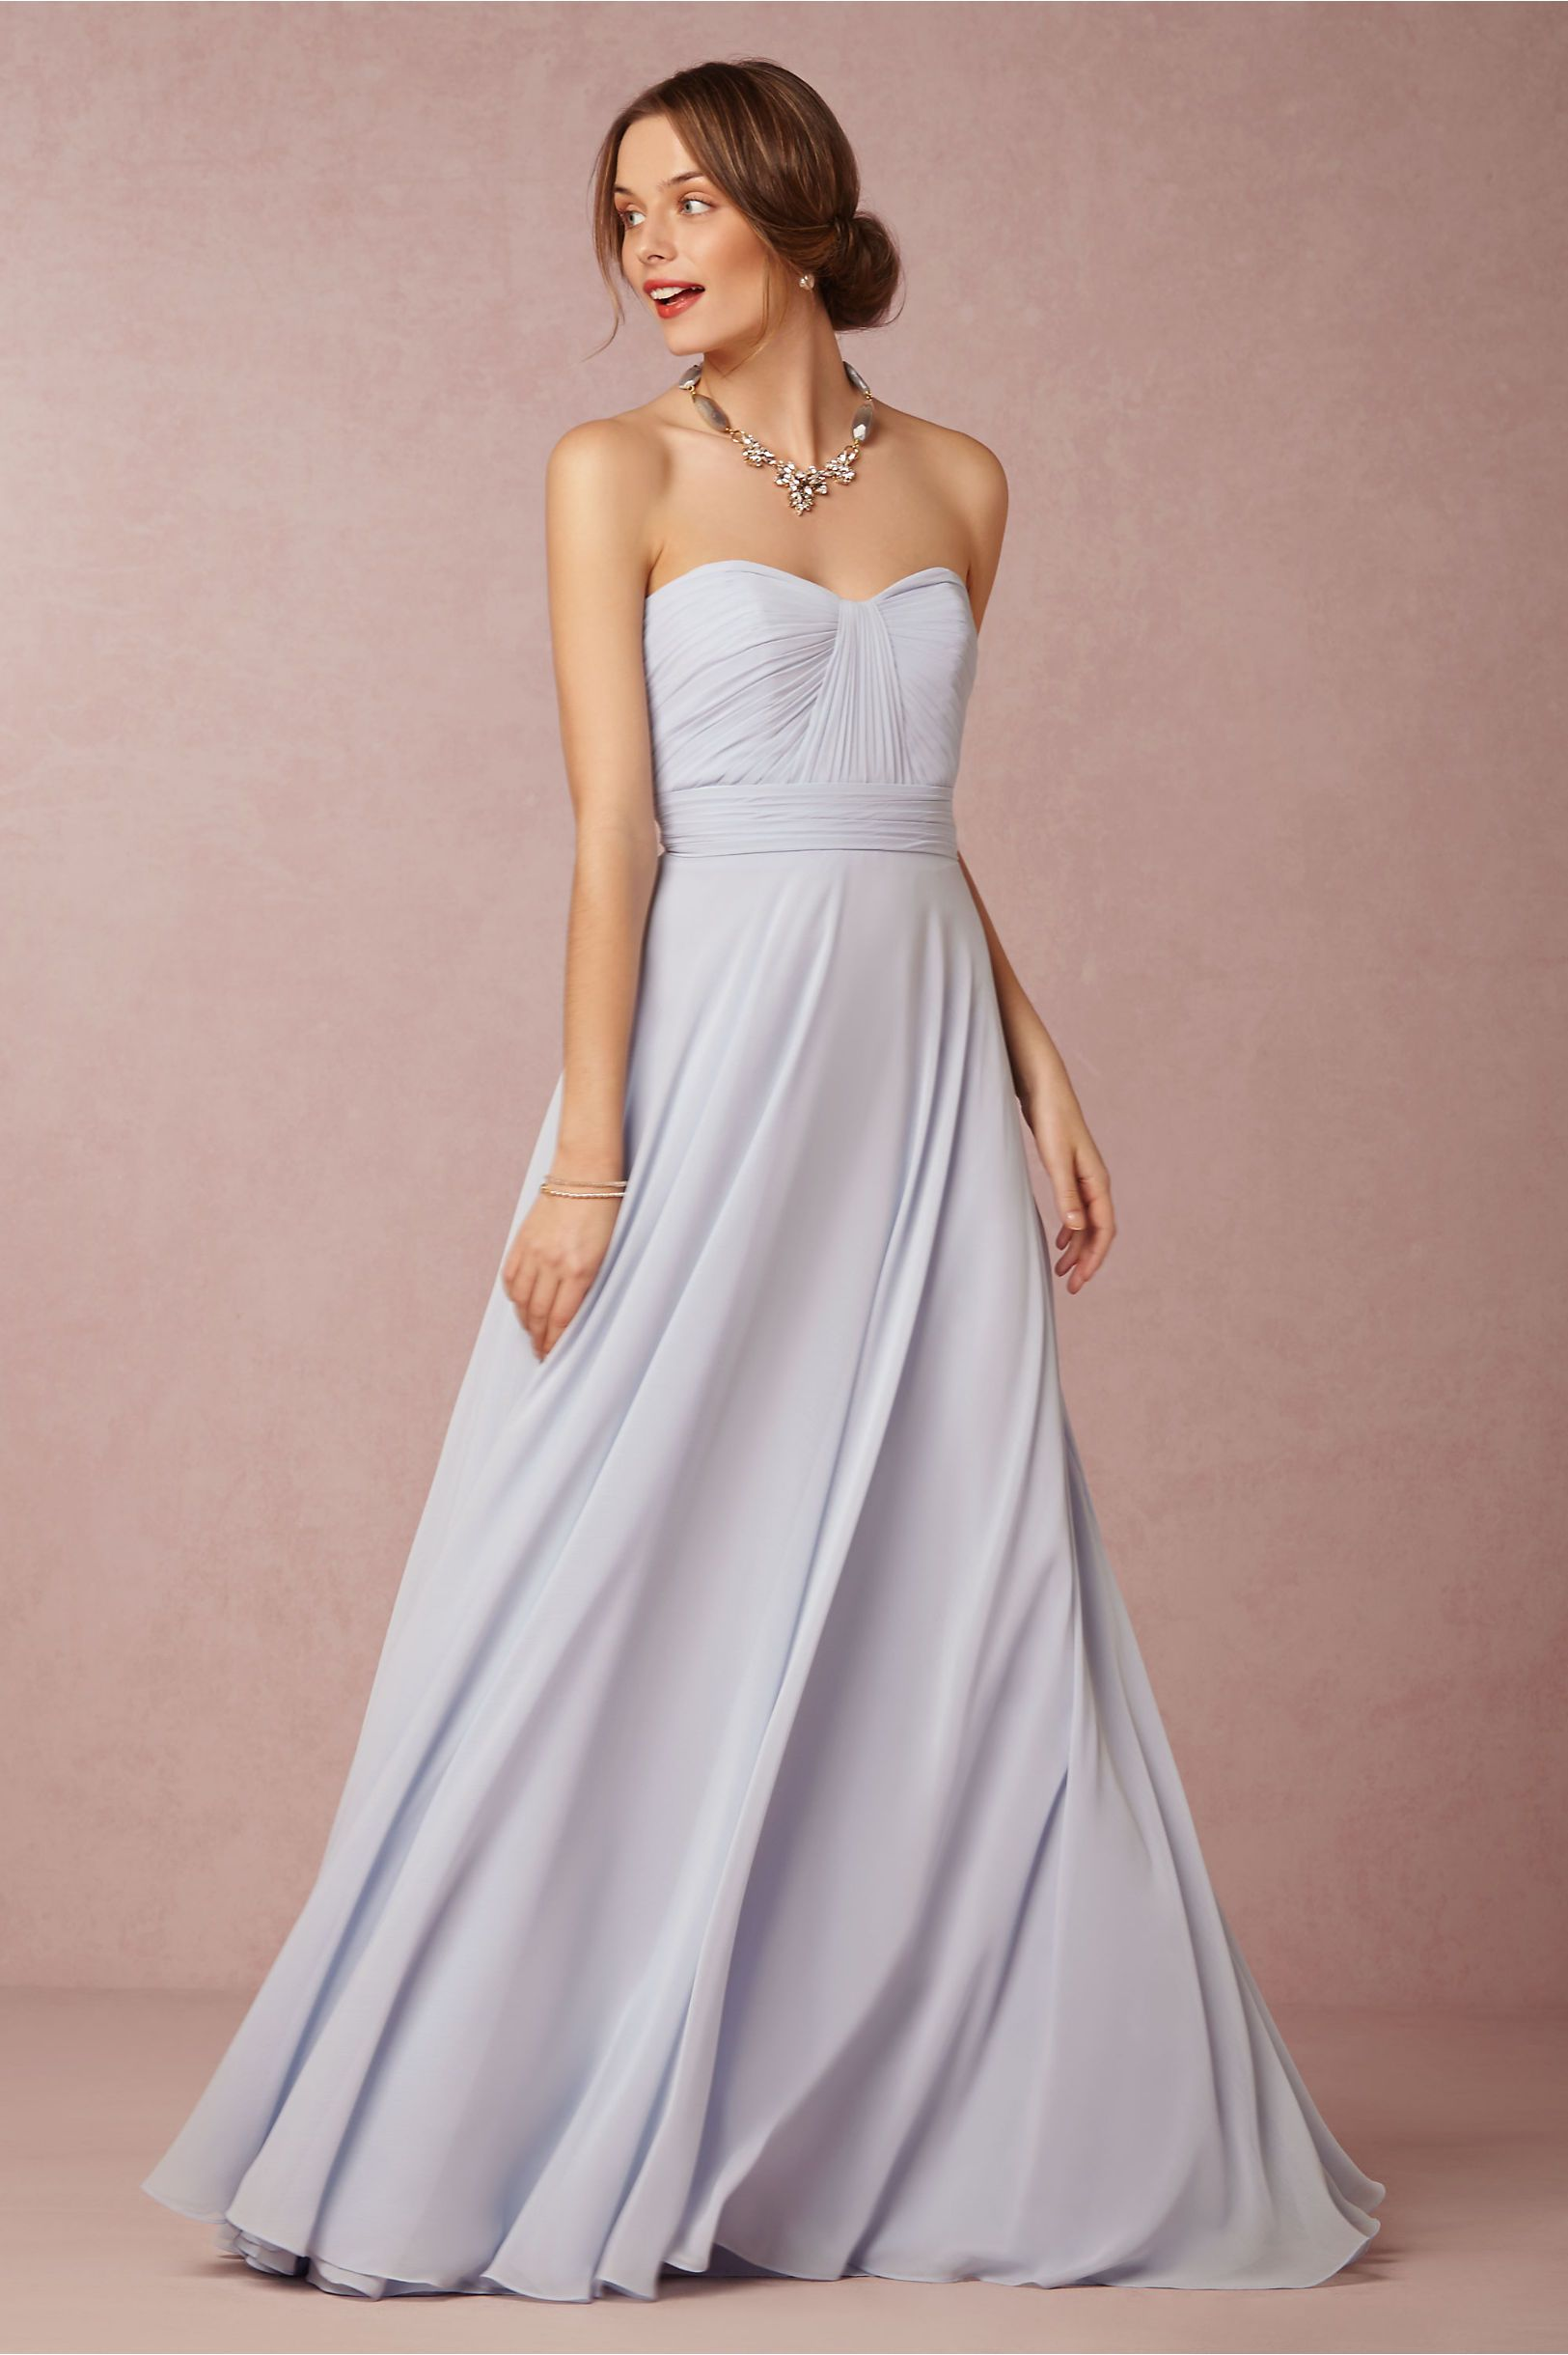 Quinn bridesmaids dress in harbor blue from bhldn something quinn bridesmaids dress in harbor blue from bhldn ombrellifo Gallery